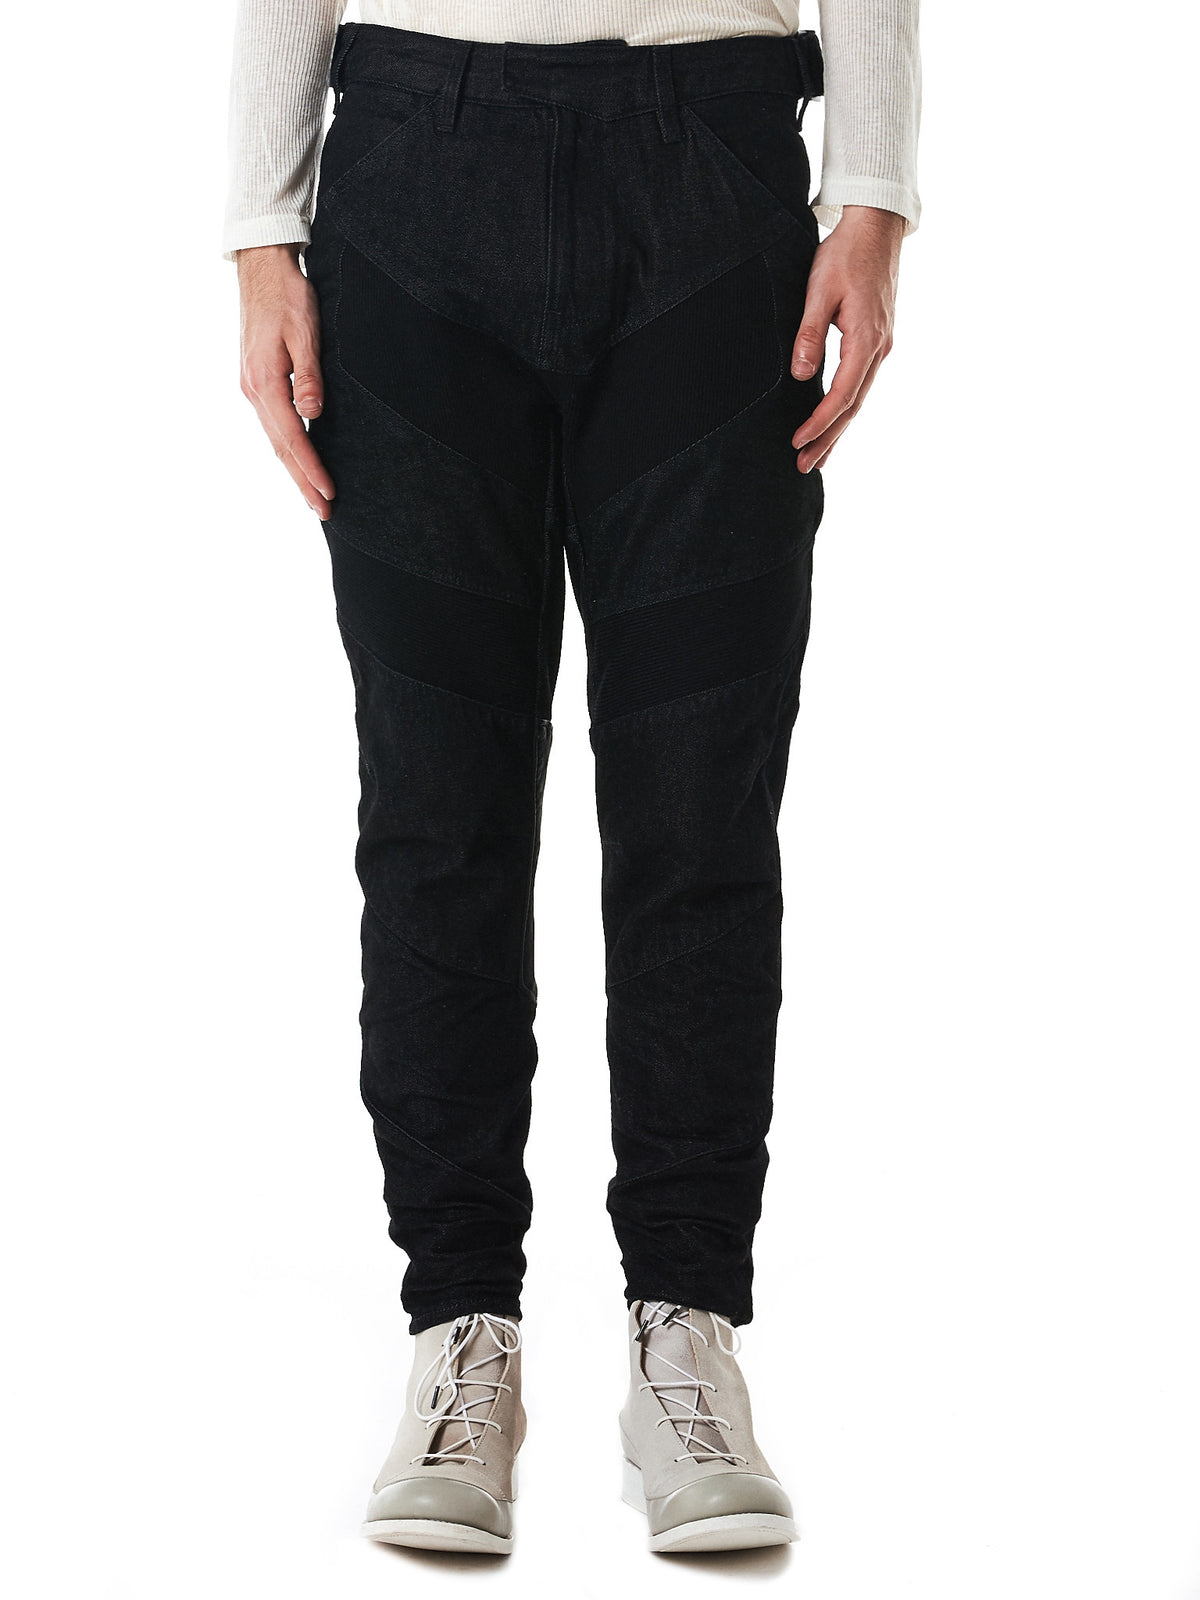 Motac-X Tapered Denim Jeans (D05268-9112-001)